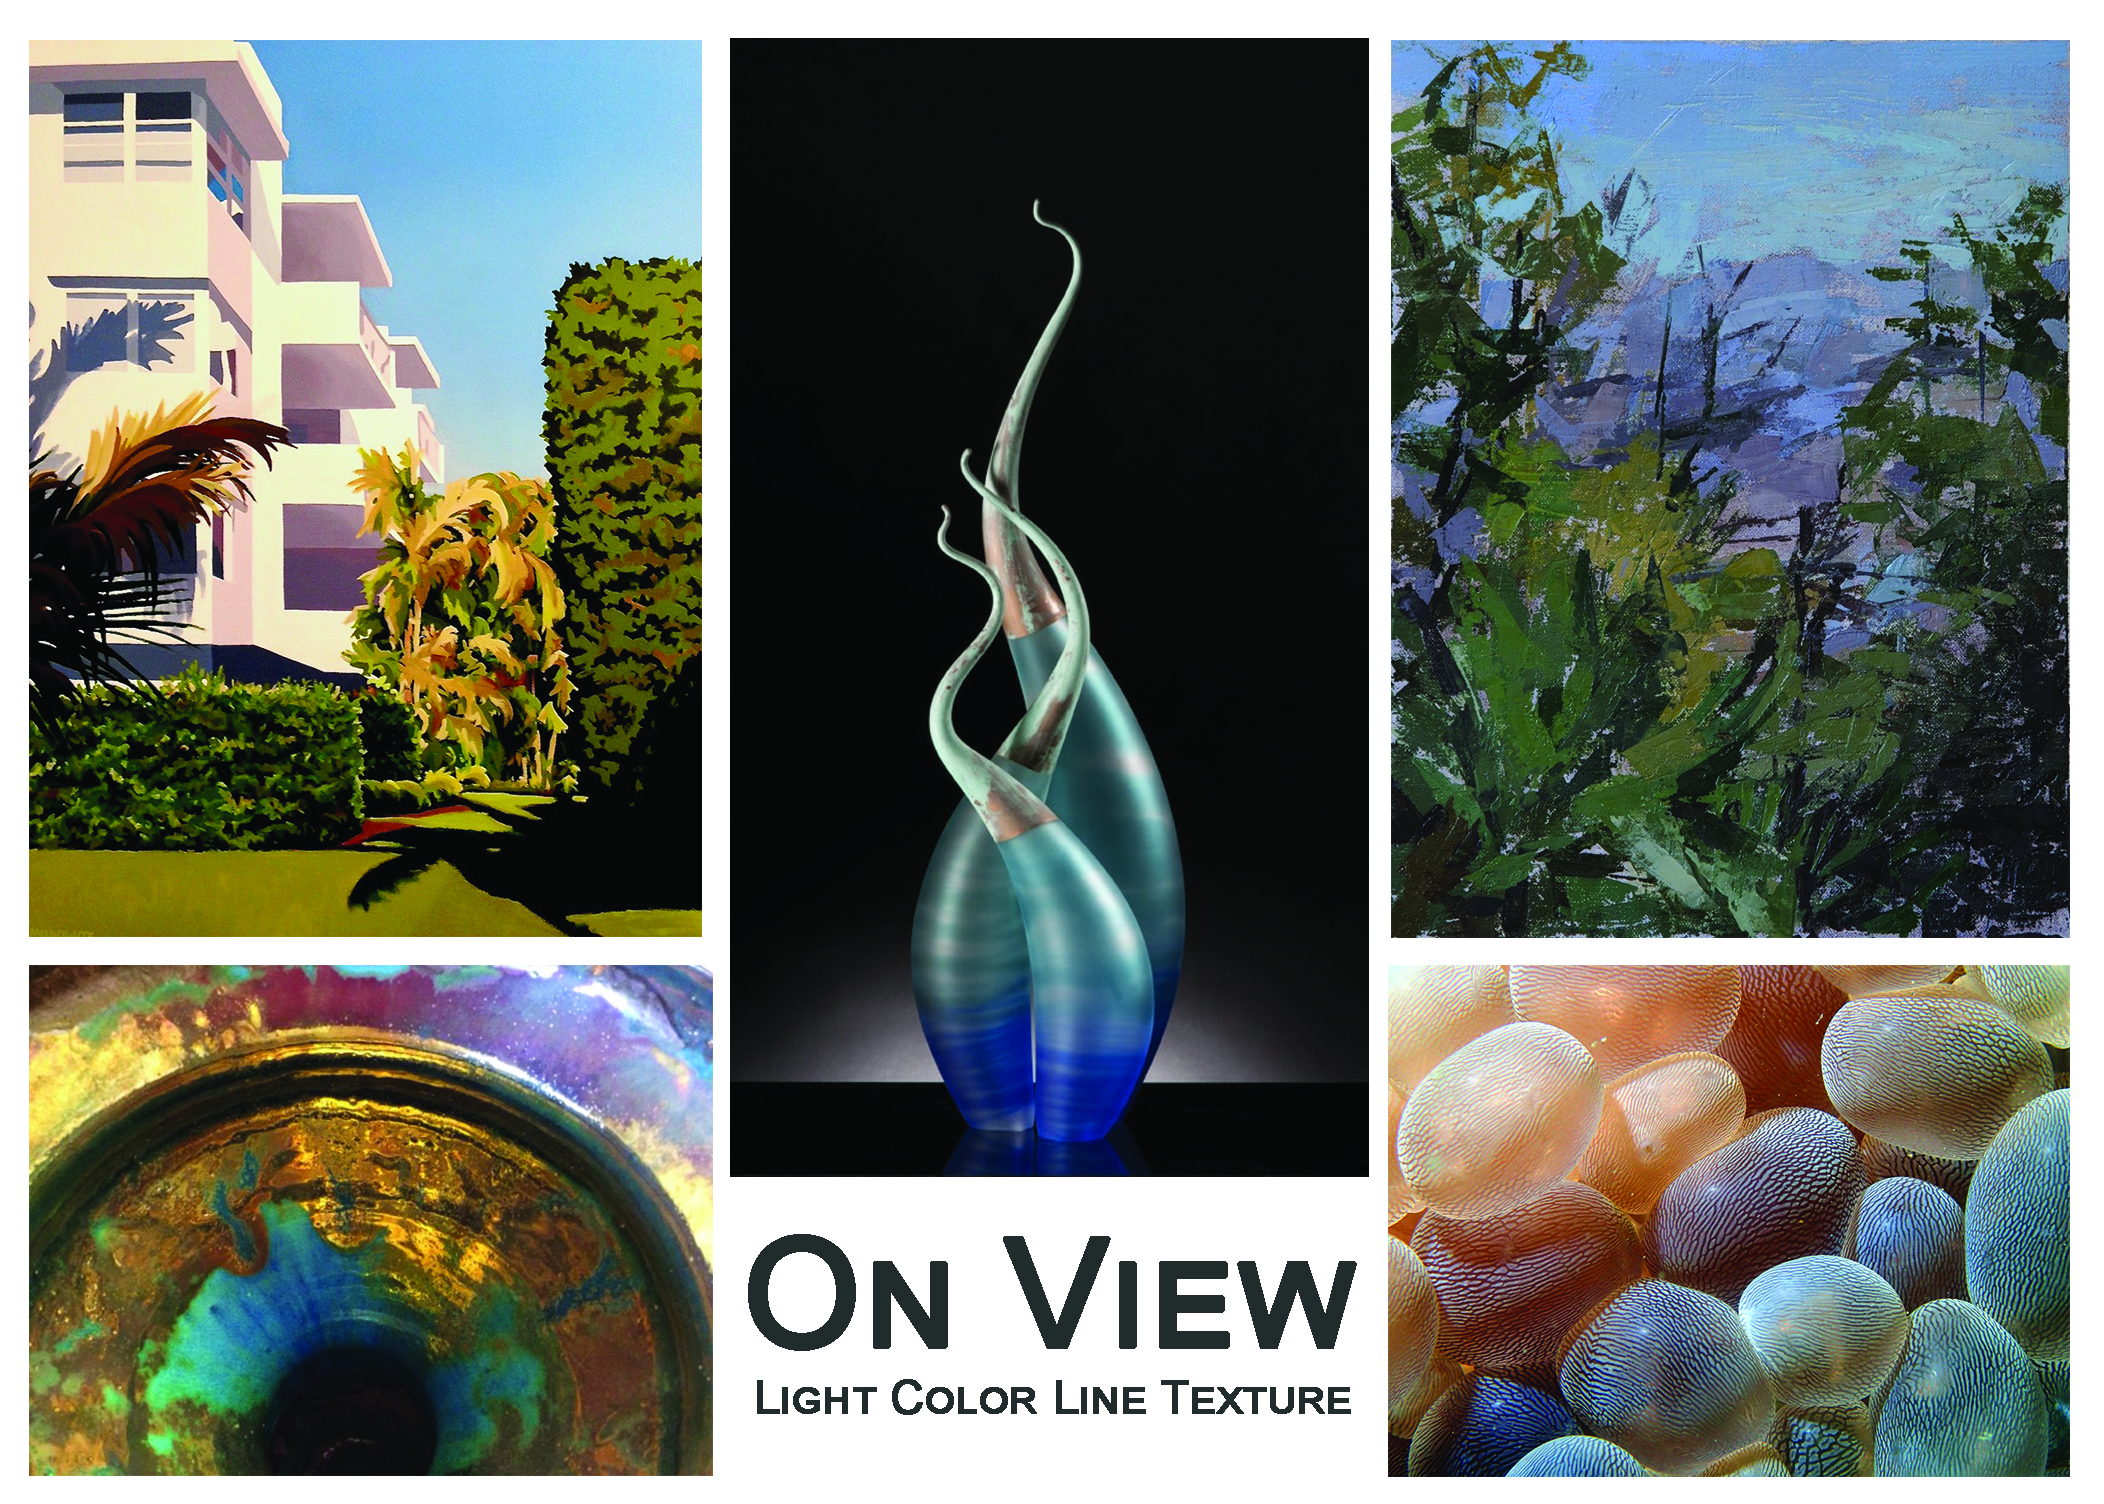 ON VIEW - Light Color Line Texture